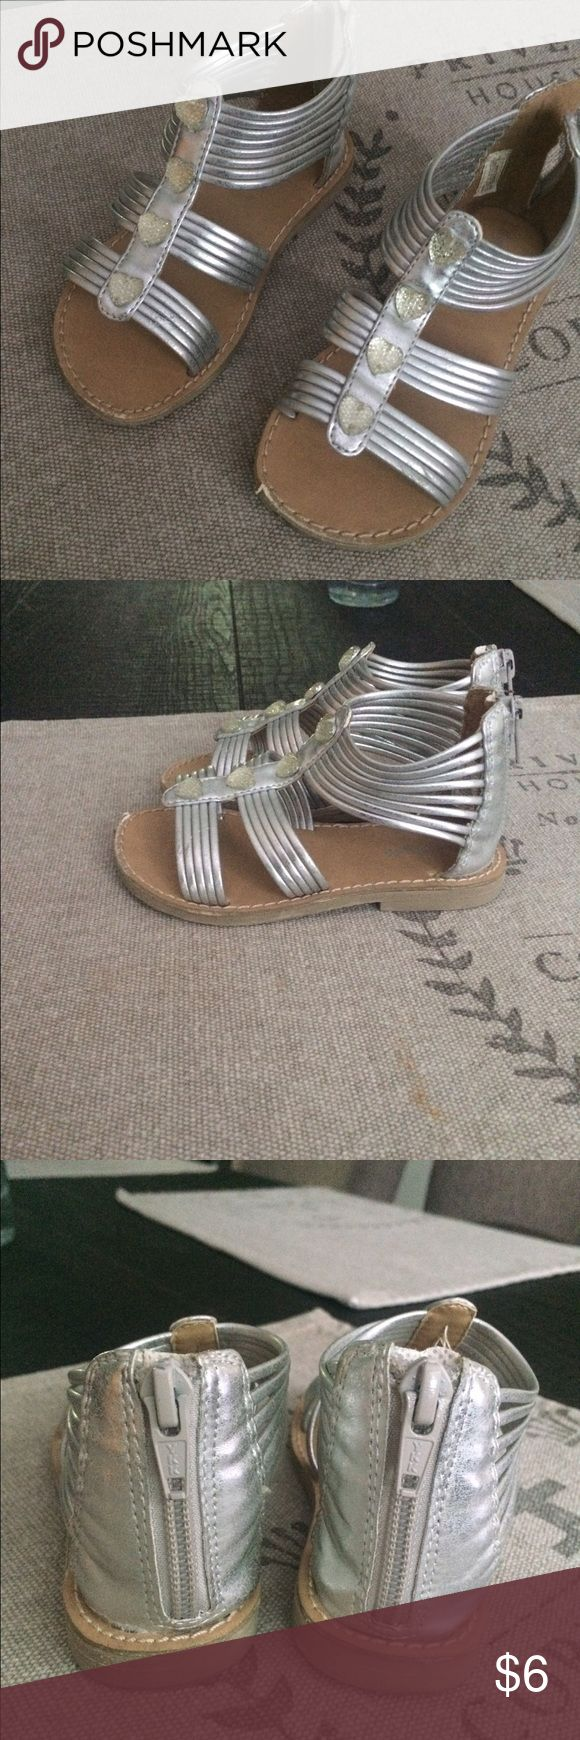 Black sandals at dsw - Silver Heart Sandals Super Cute Sandals With Minimal Wear Top Hearty Is Slightly Loose On